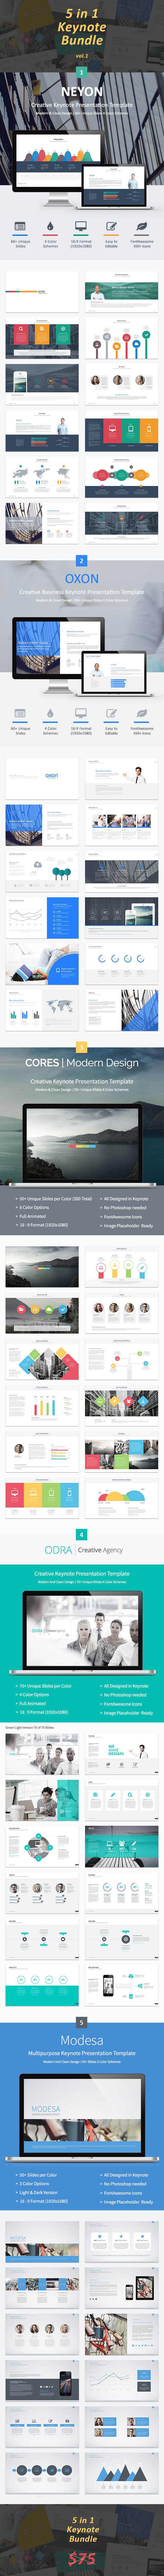 GraphicRiver 5-in-1 Keynote Bundle 9693787